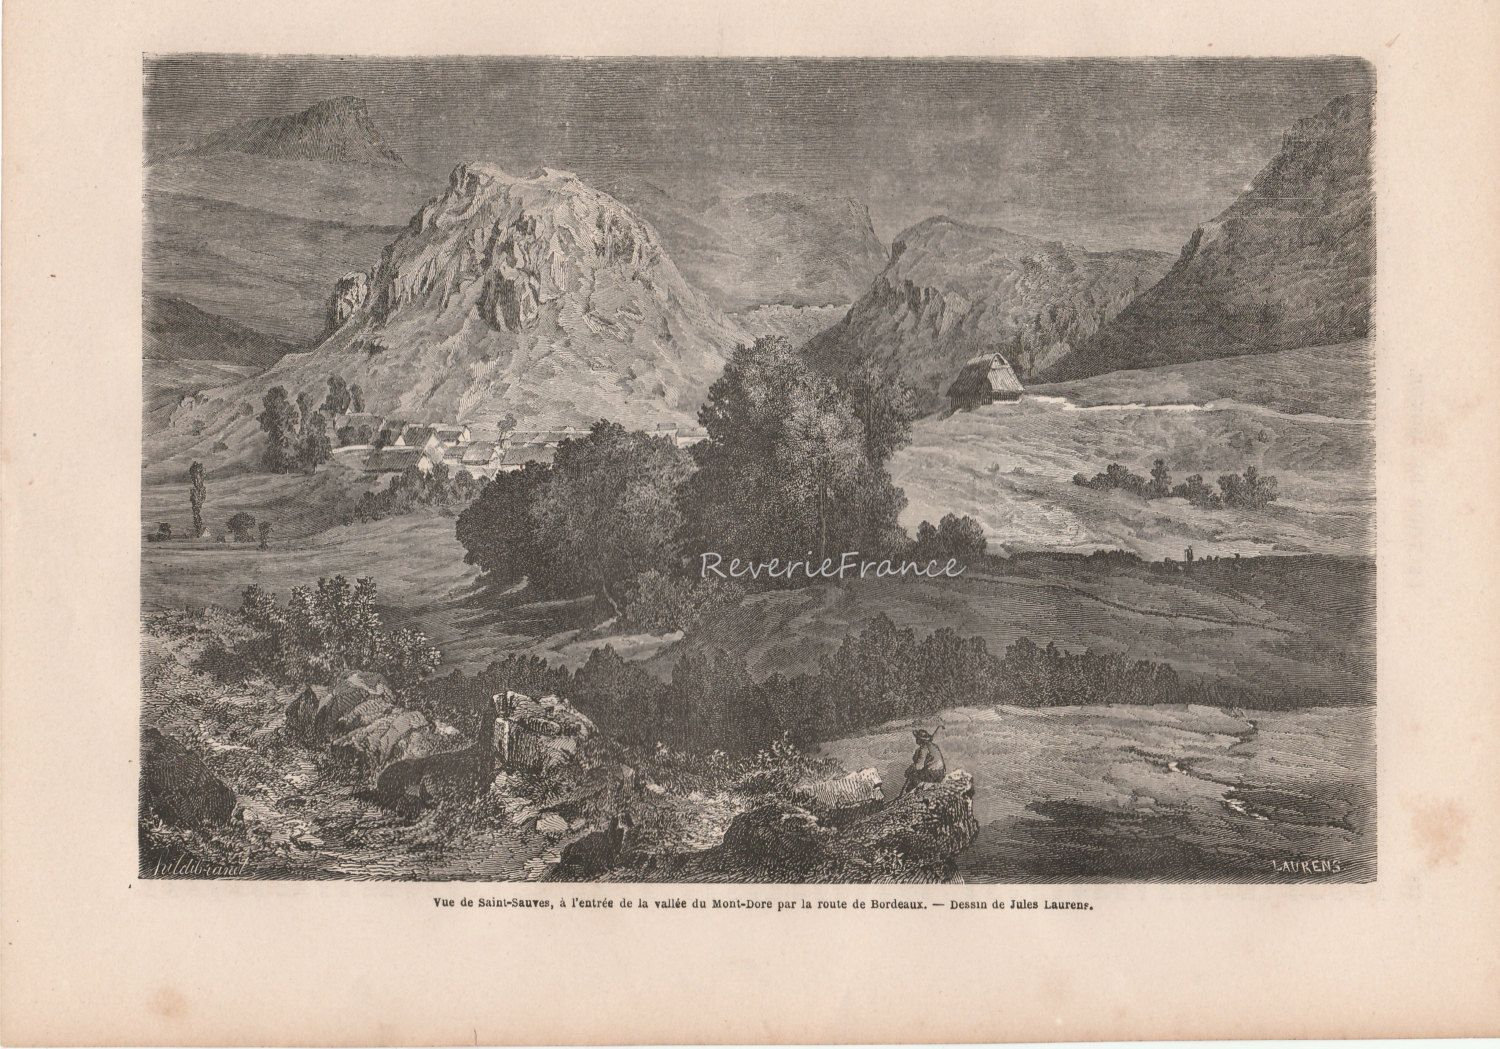 Antique French Engraving of Saint Sauves near Valley of Mount Doré en route to Bordeaux,France by reveriefrance on Etsy